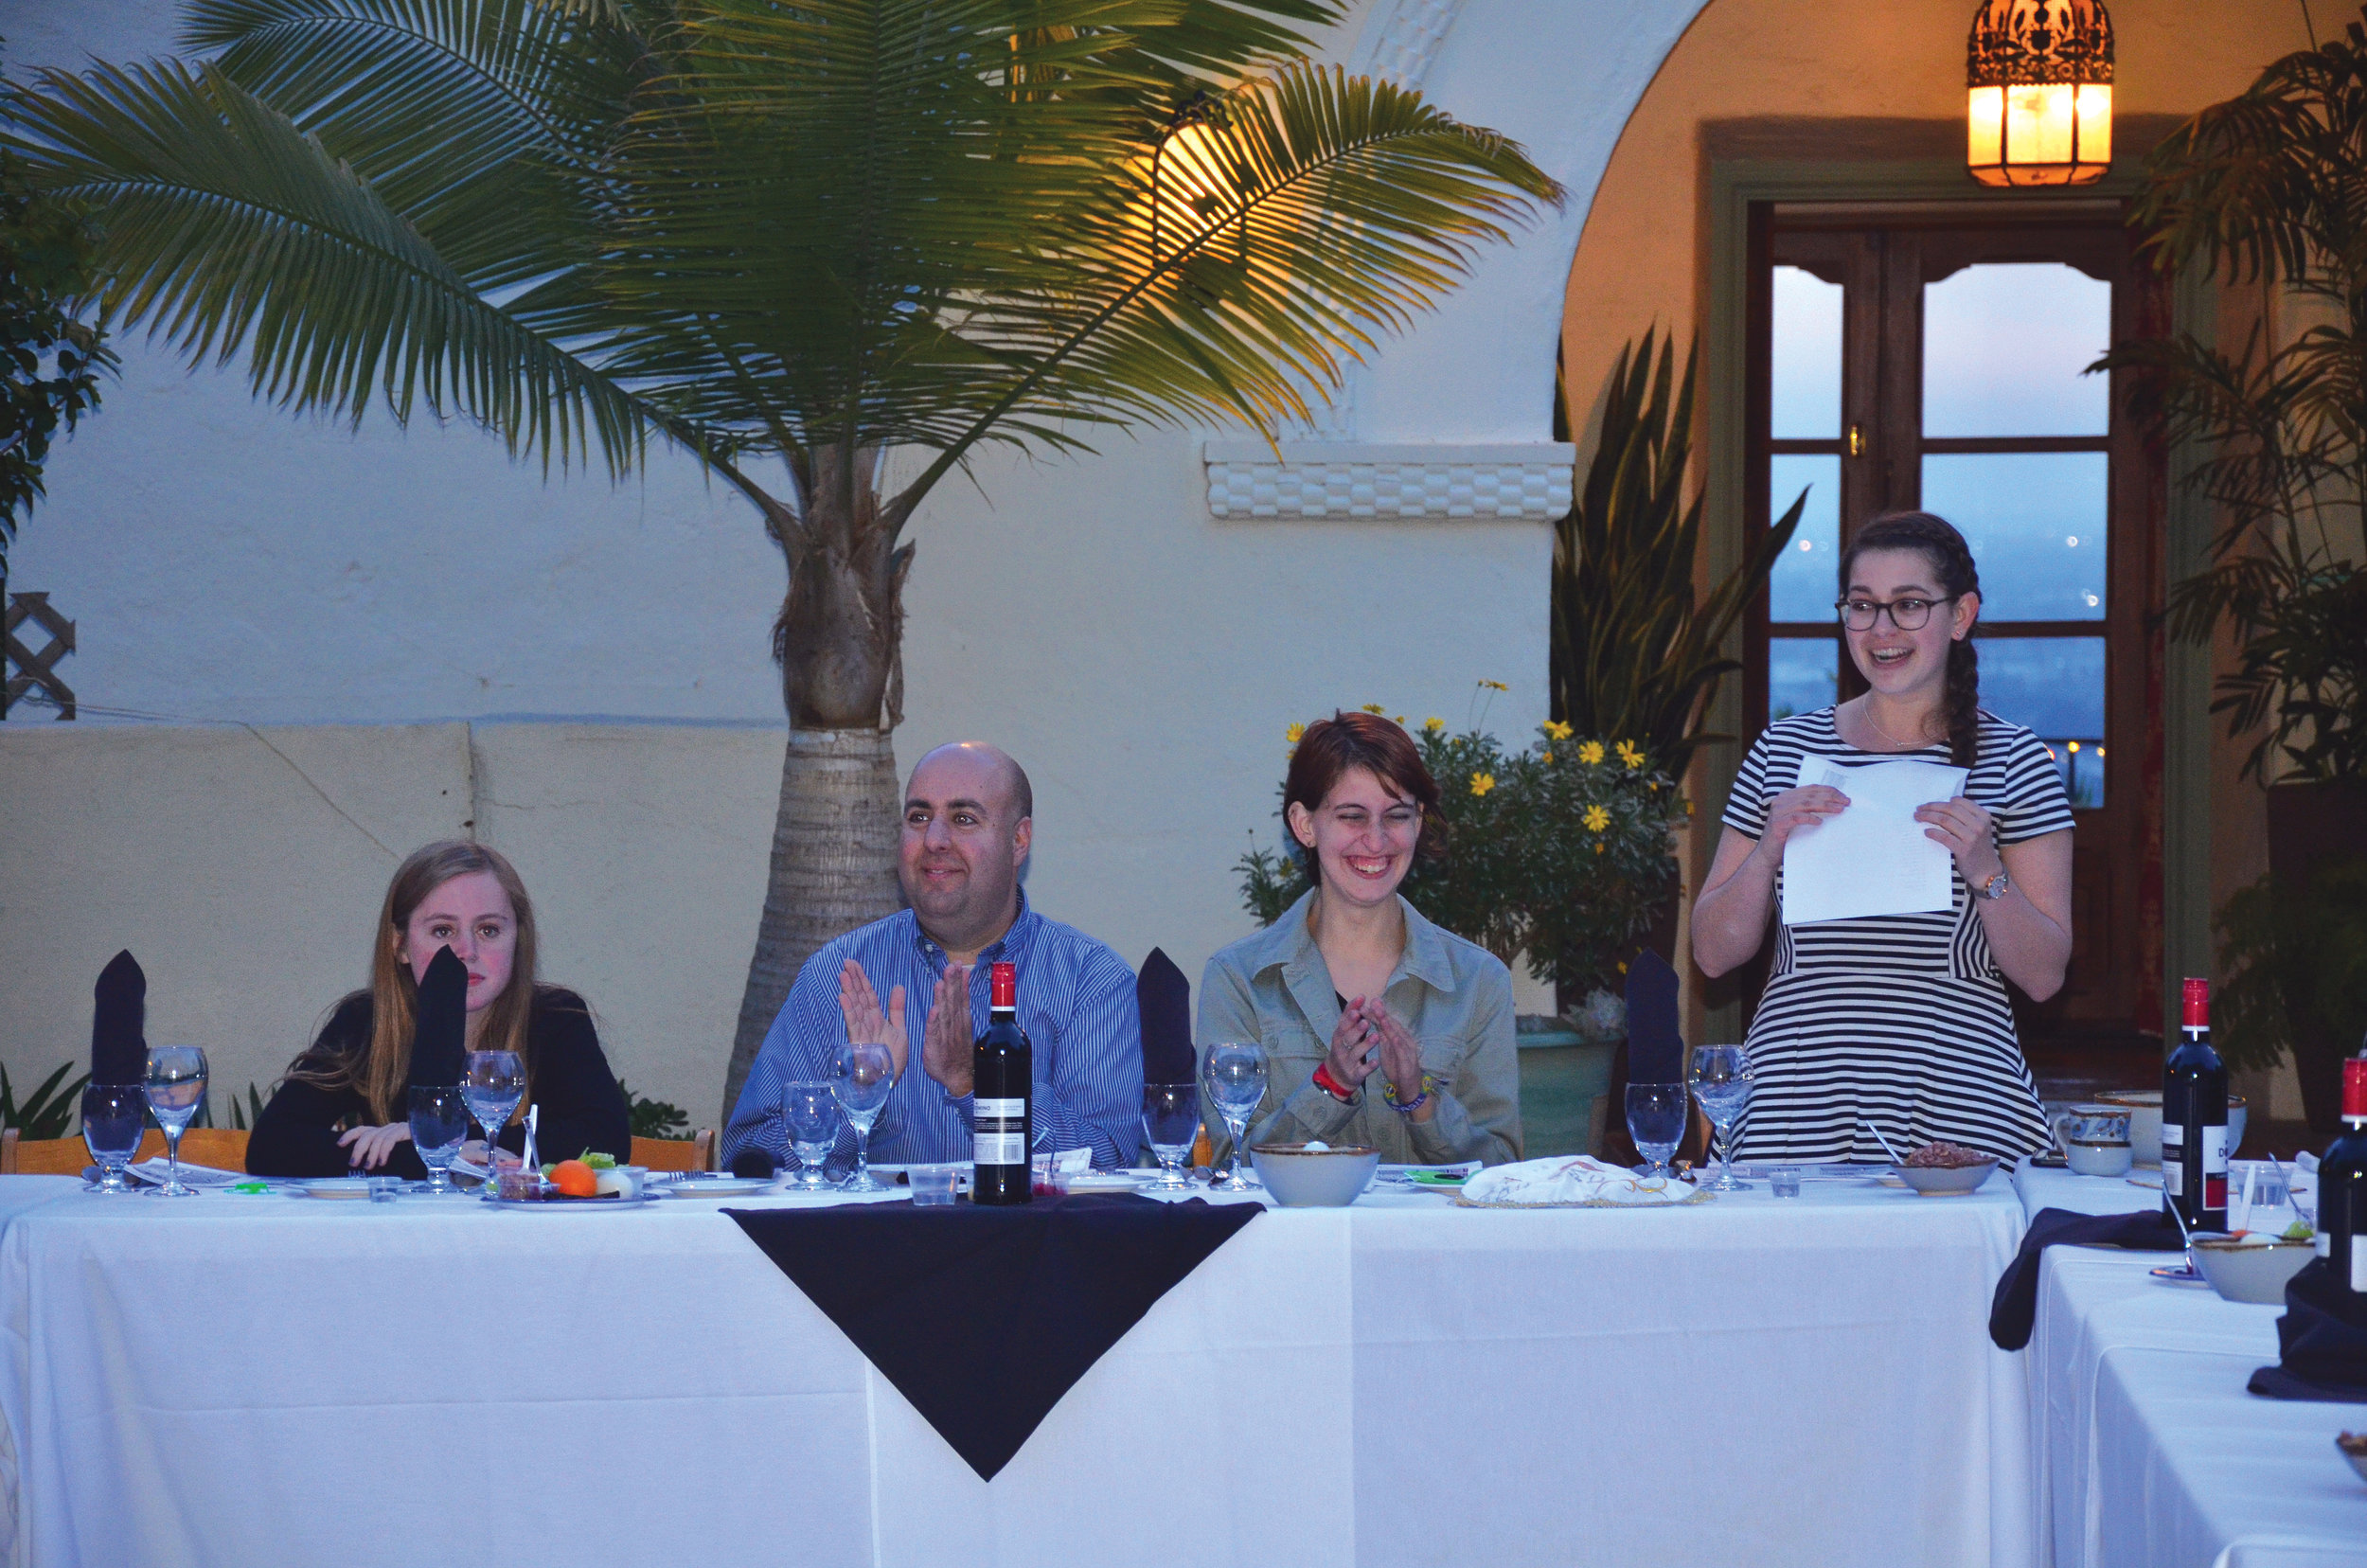 The JSU Board welcomed their guests last Friday to their second annual Passover Seder dinner.